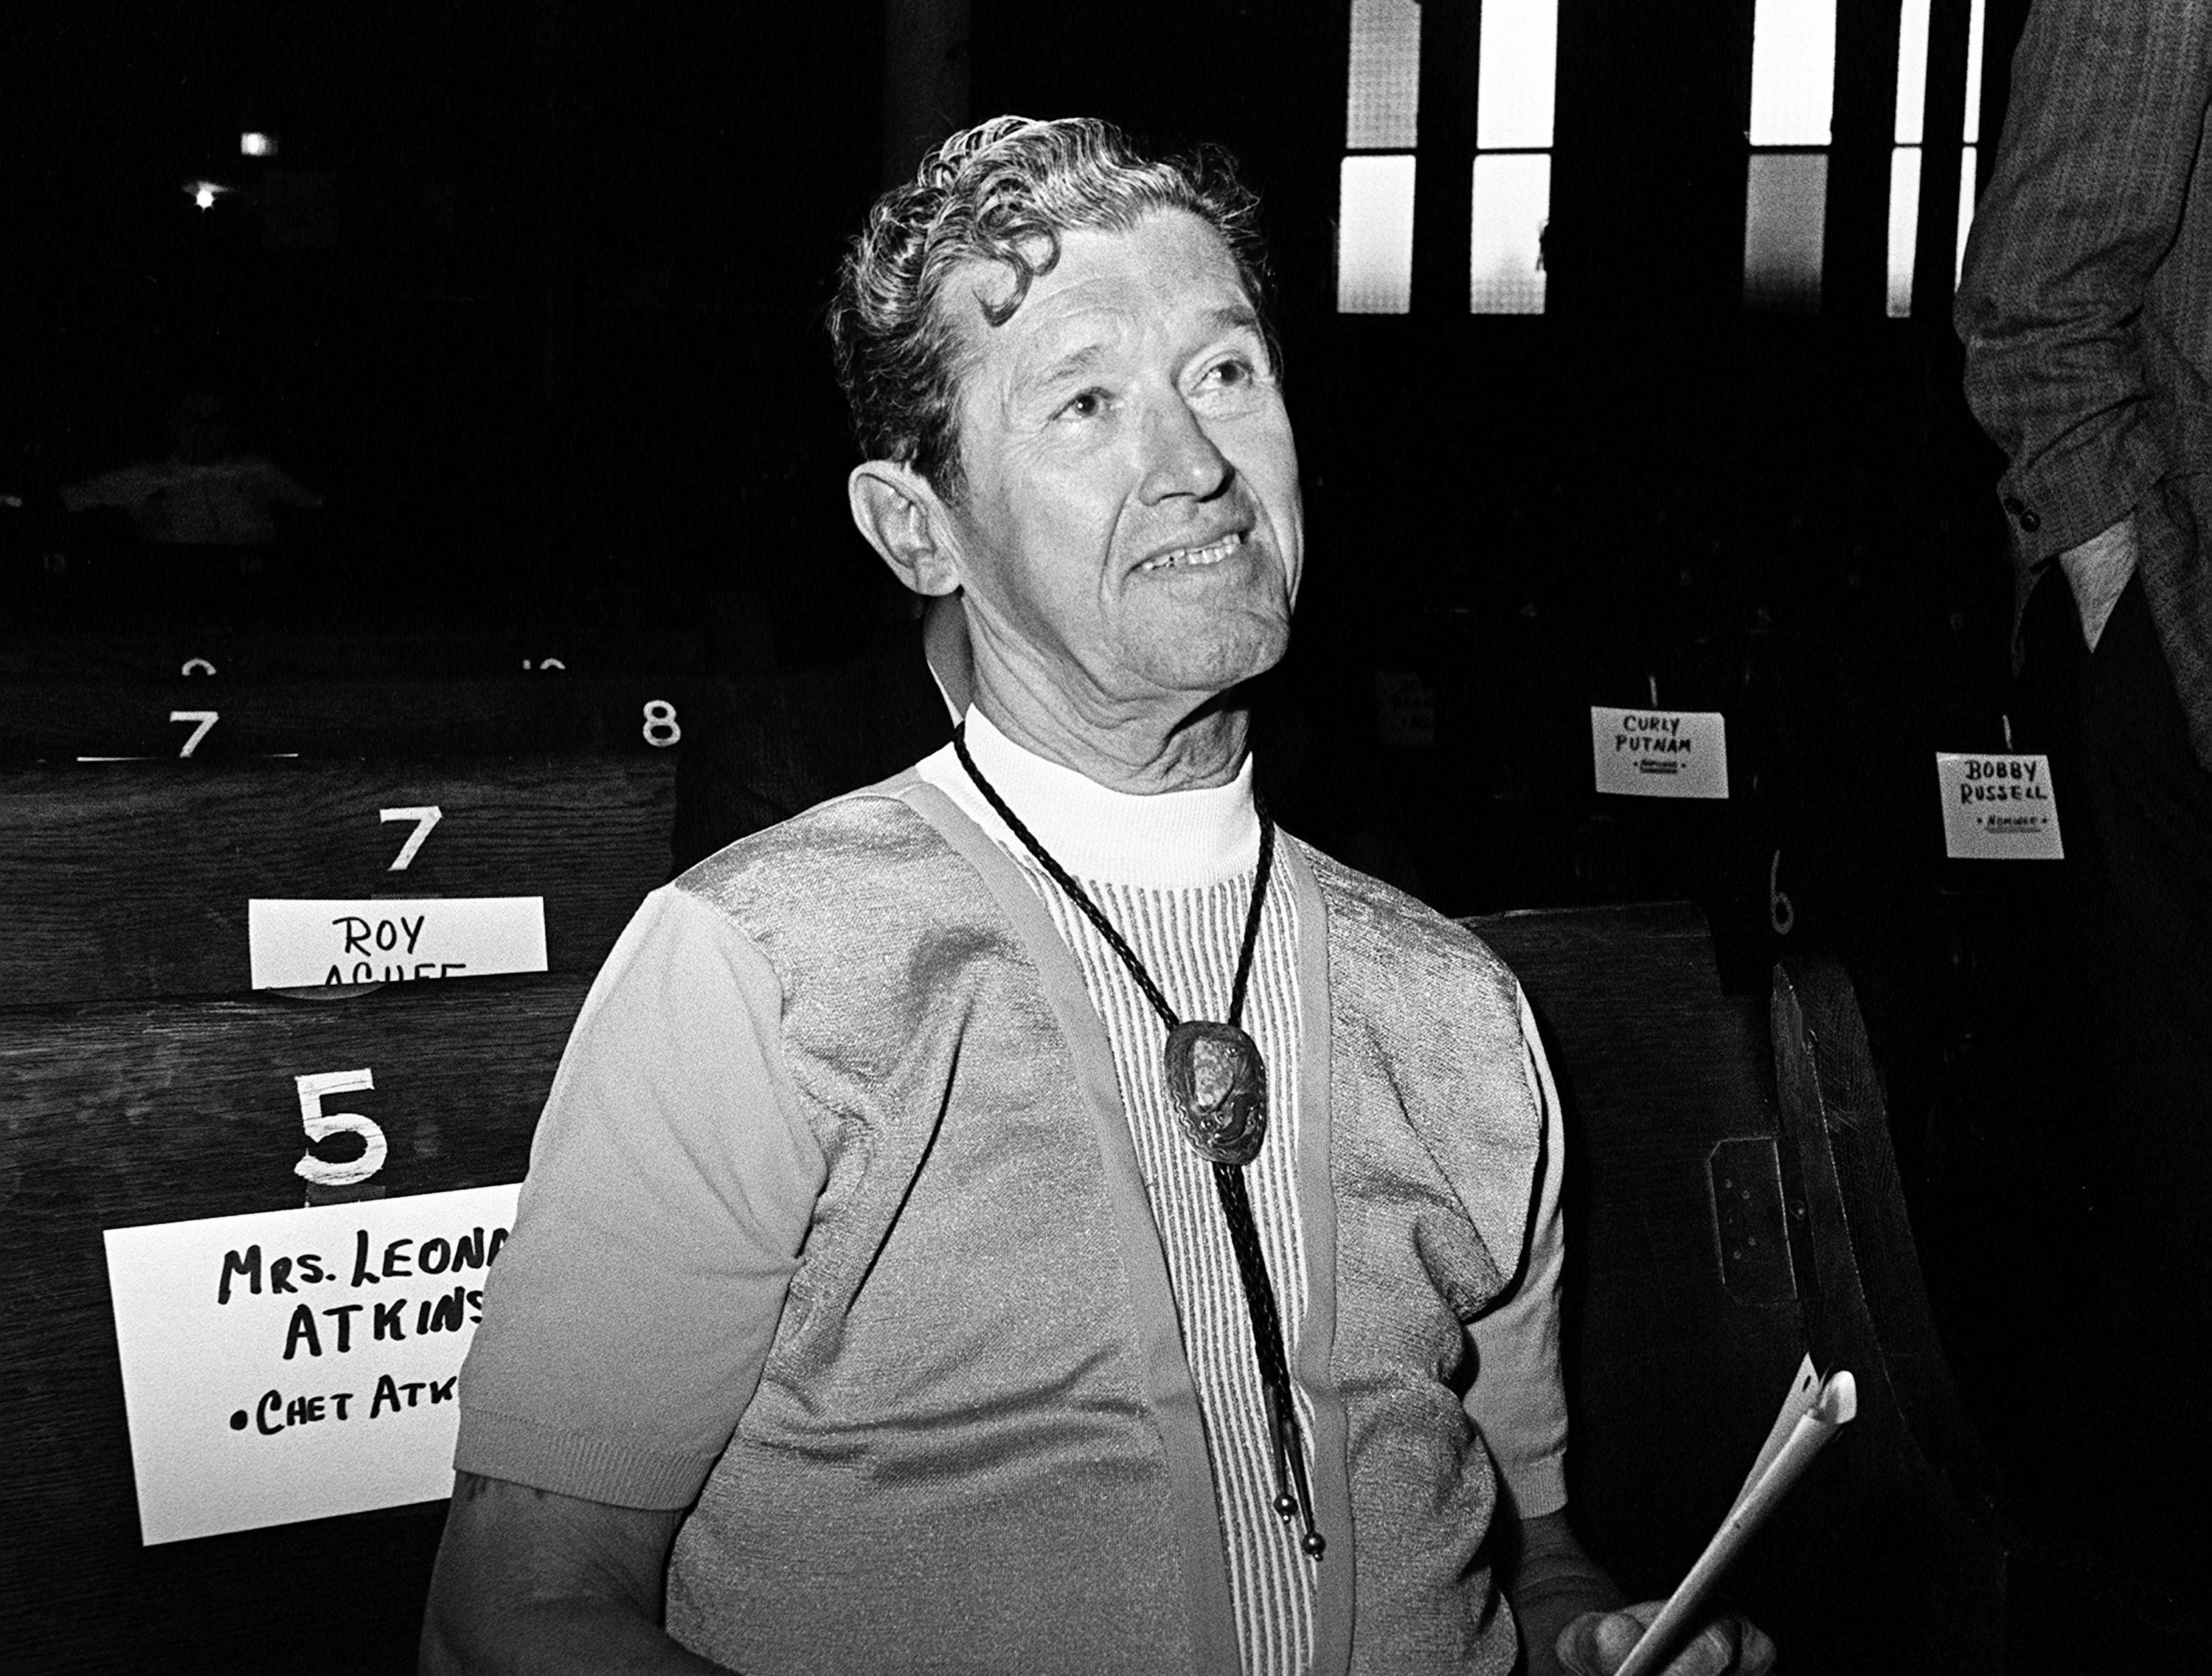 Roy Acuff looks on during rehearsal at the Grand Ole Opry on Oct. 18, 1968, for that night's CMA Awards show.